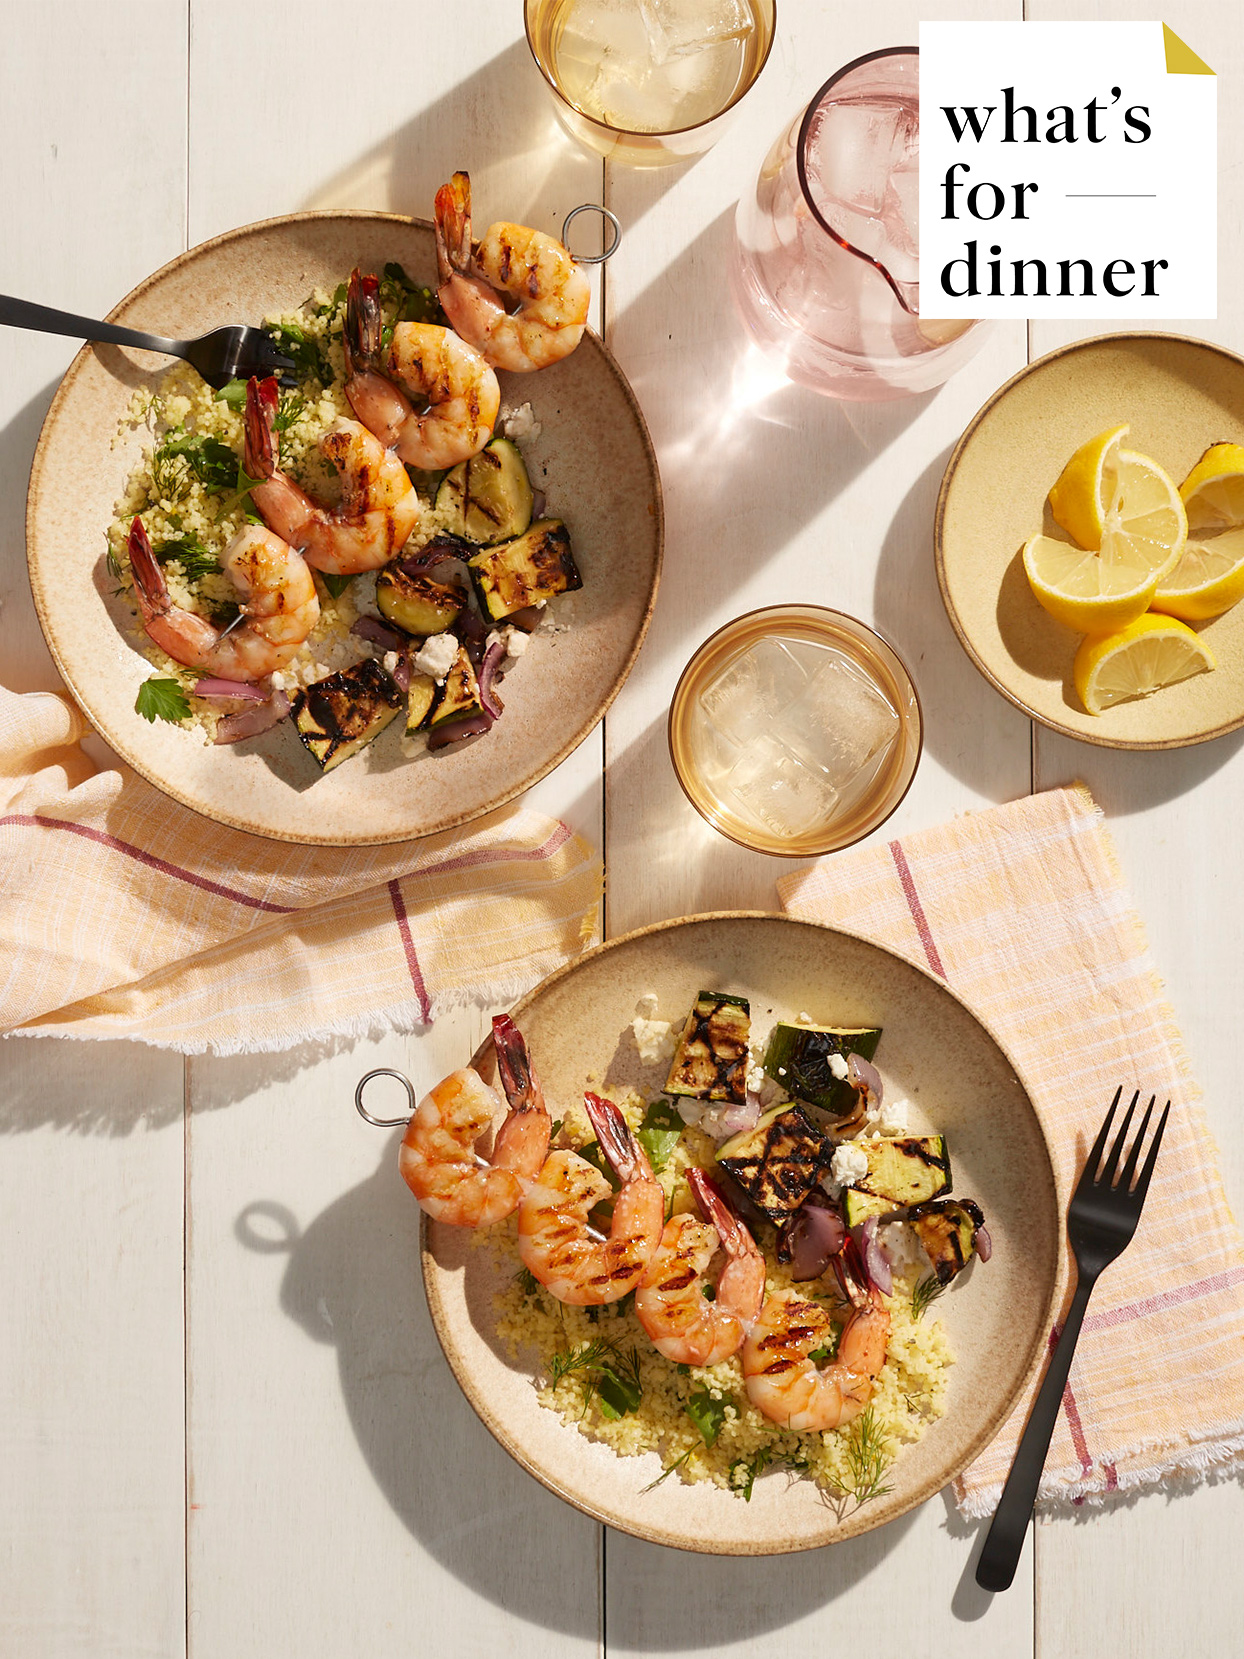 What's for Dinner? 22 Recipes Weeknight Recipes to Make in May (Including a Few Extra-Special Seafood Dishes)